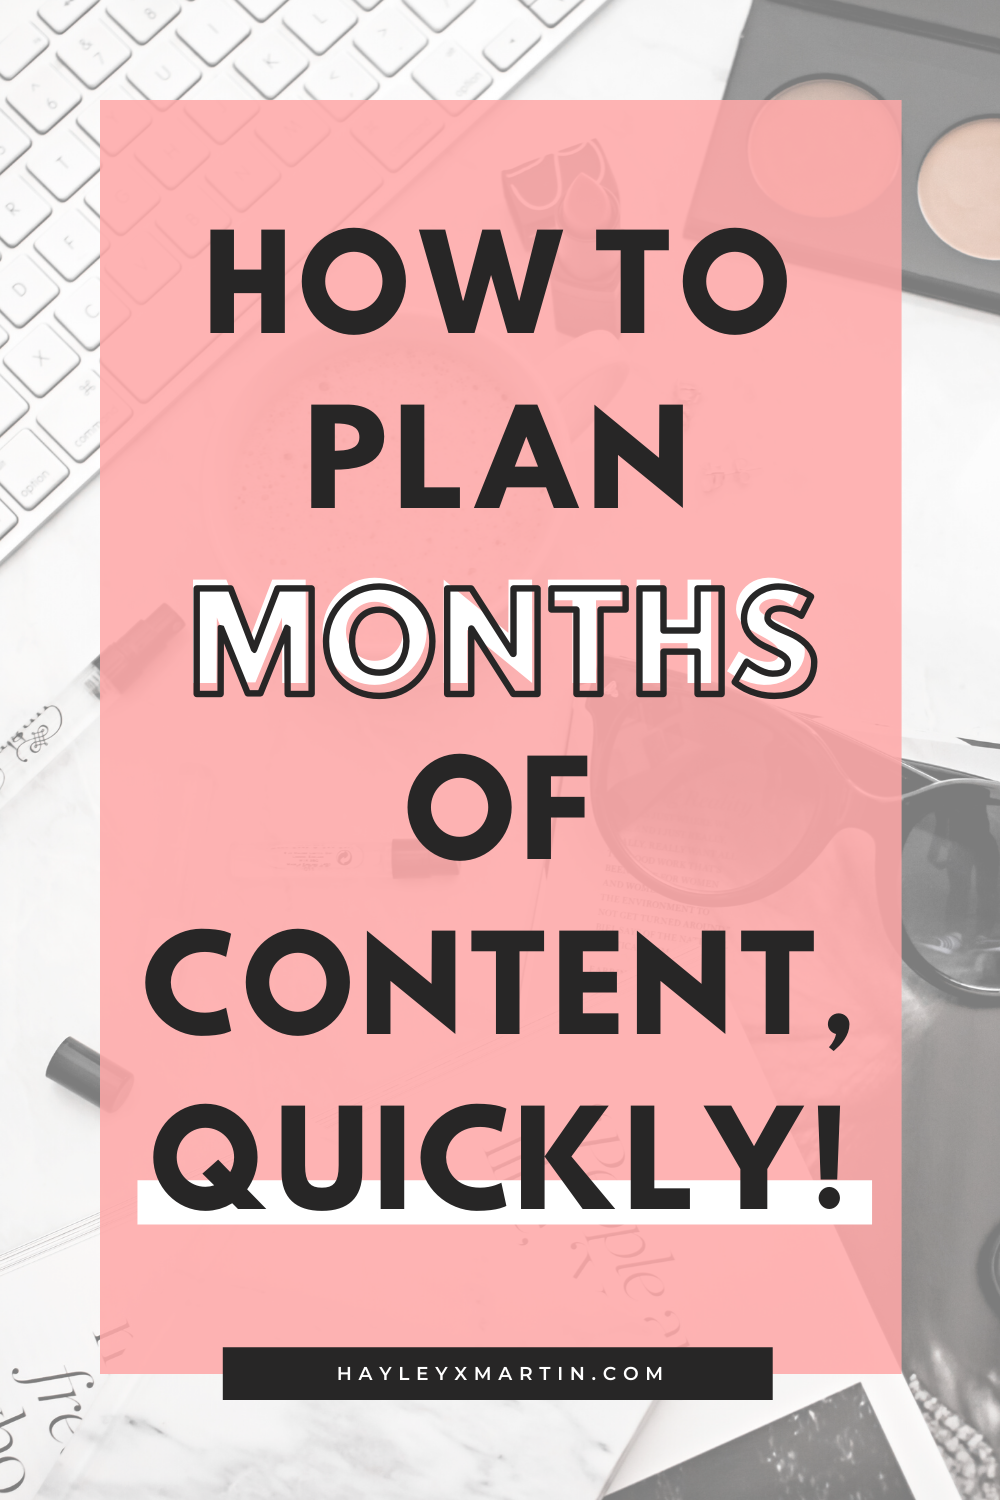 HOW TO PLAN MONTHS OF CONTENT. QUICKLY! HAYLEYXMARTIN.COM